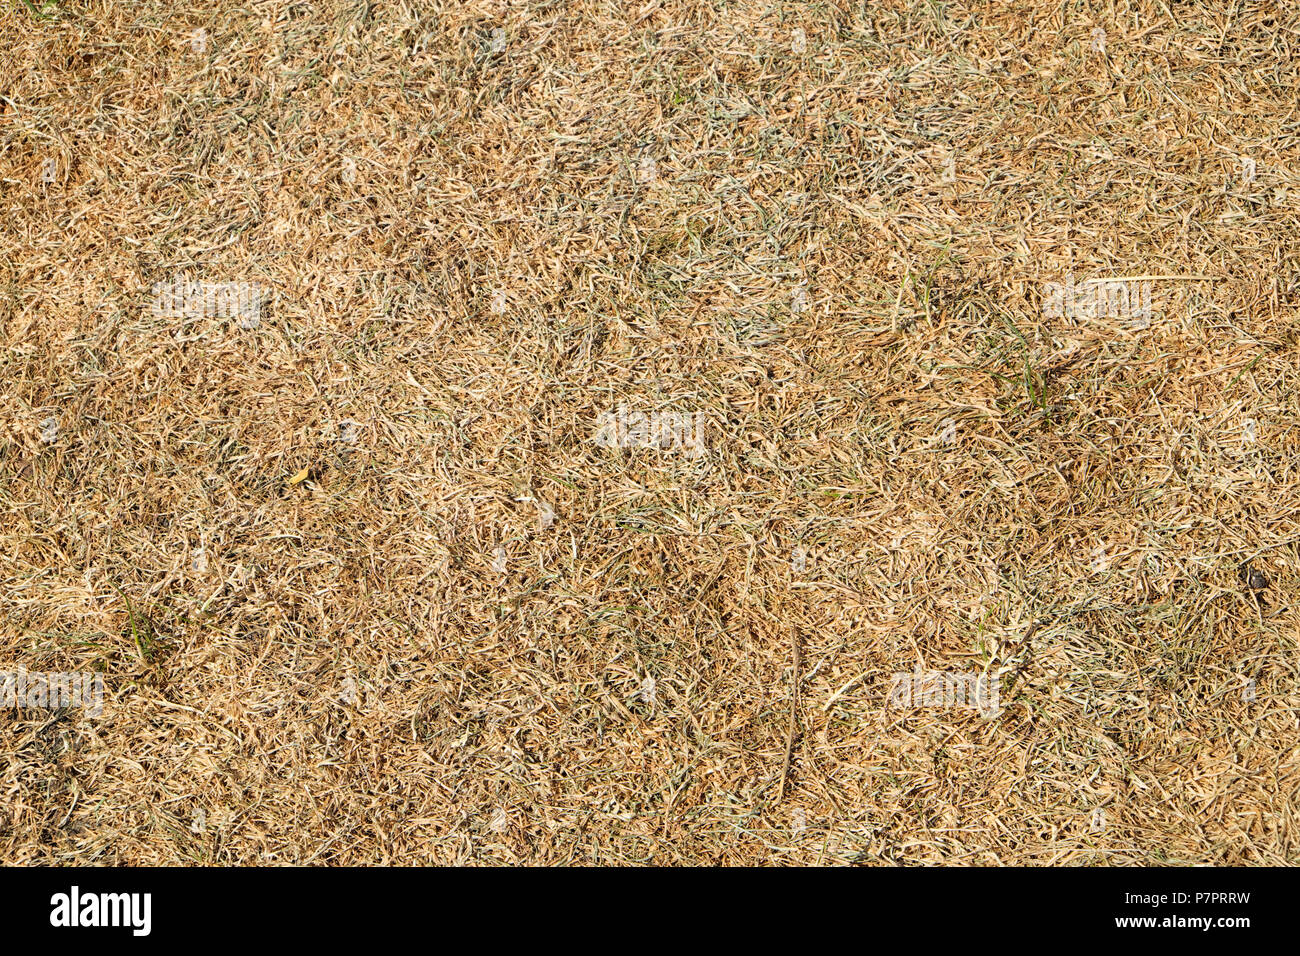 Close-up overhead view of dead grass on parched lawn in a garden in the 2018 heatwave in Wales, Great Britain UK - Stock Image